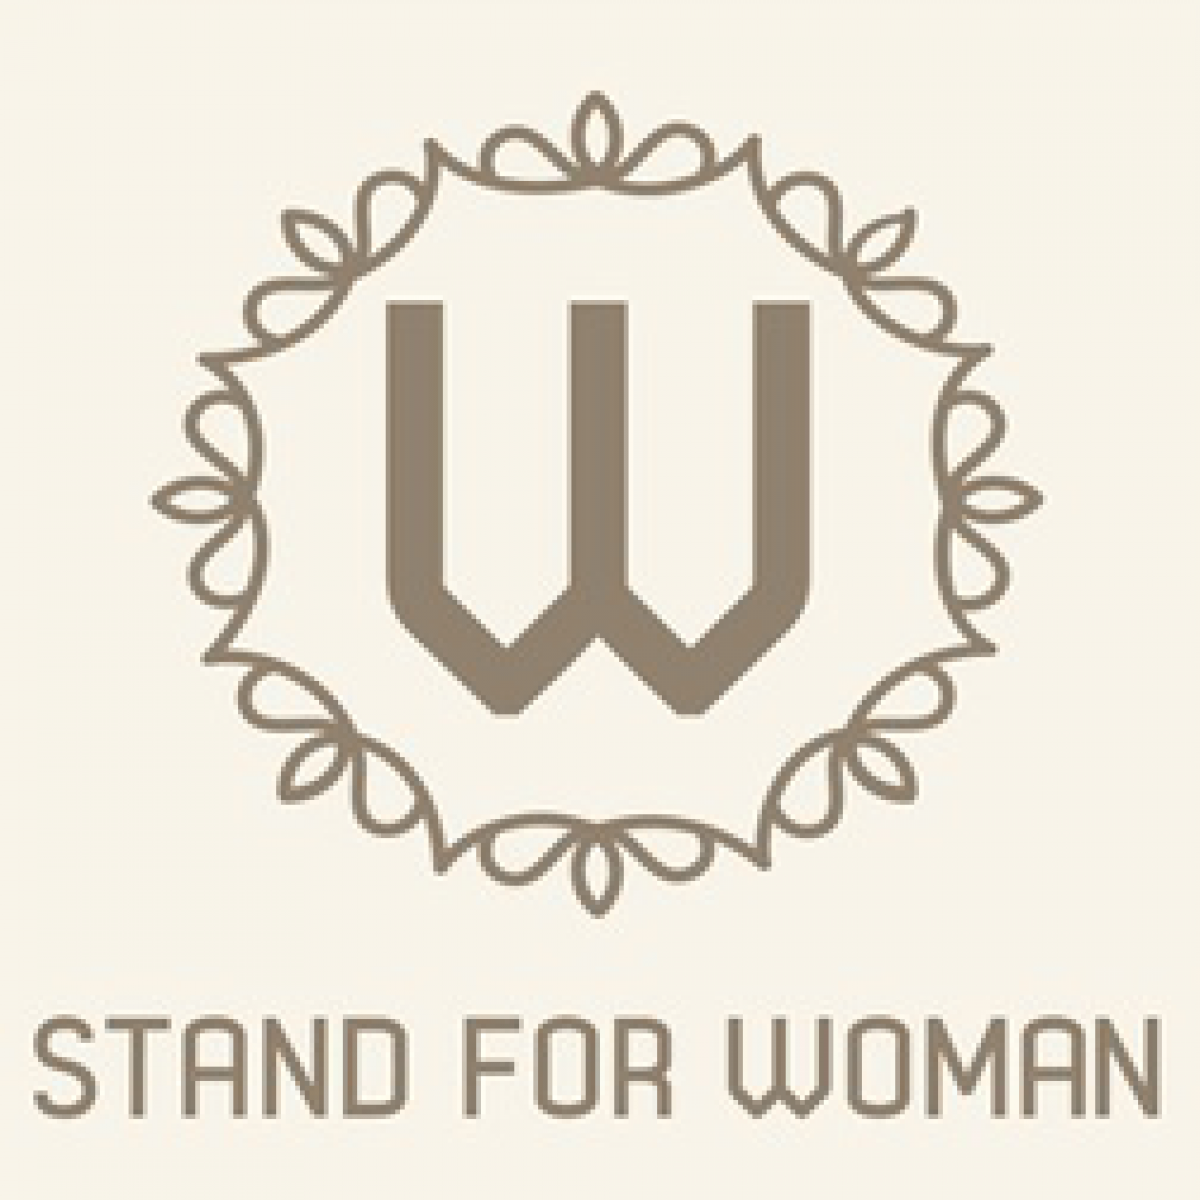 Stand For Woman